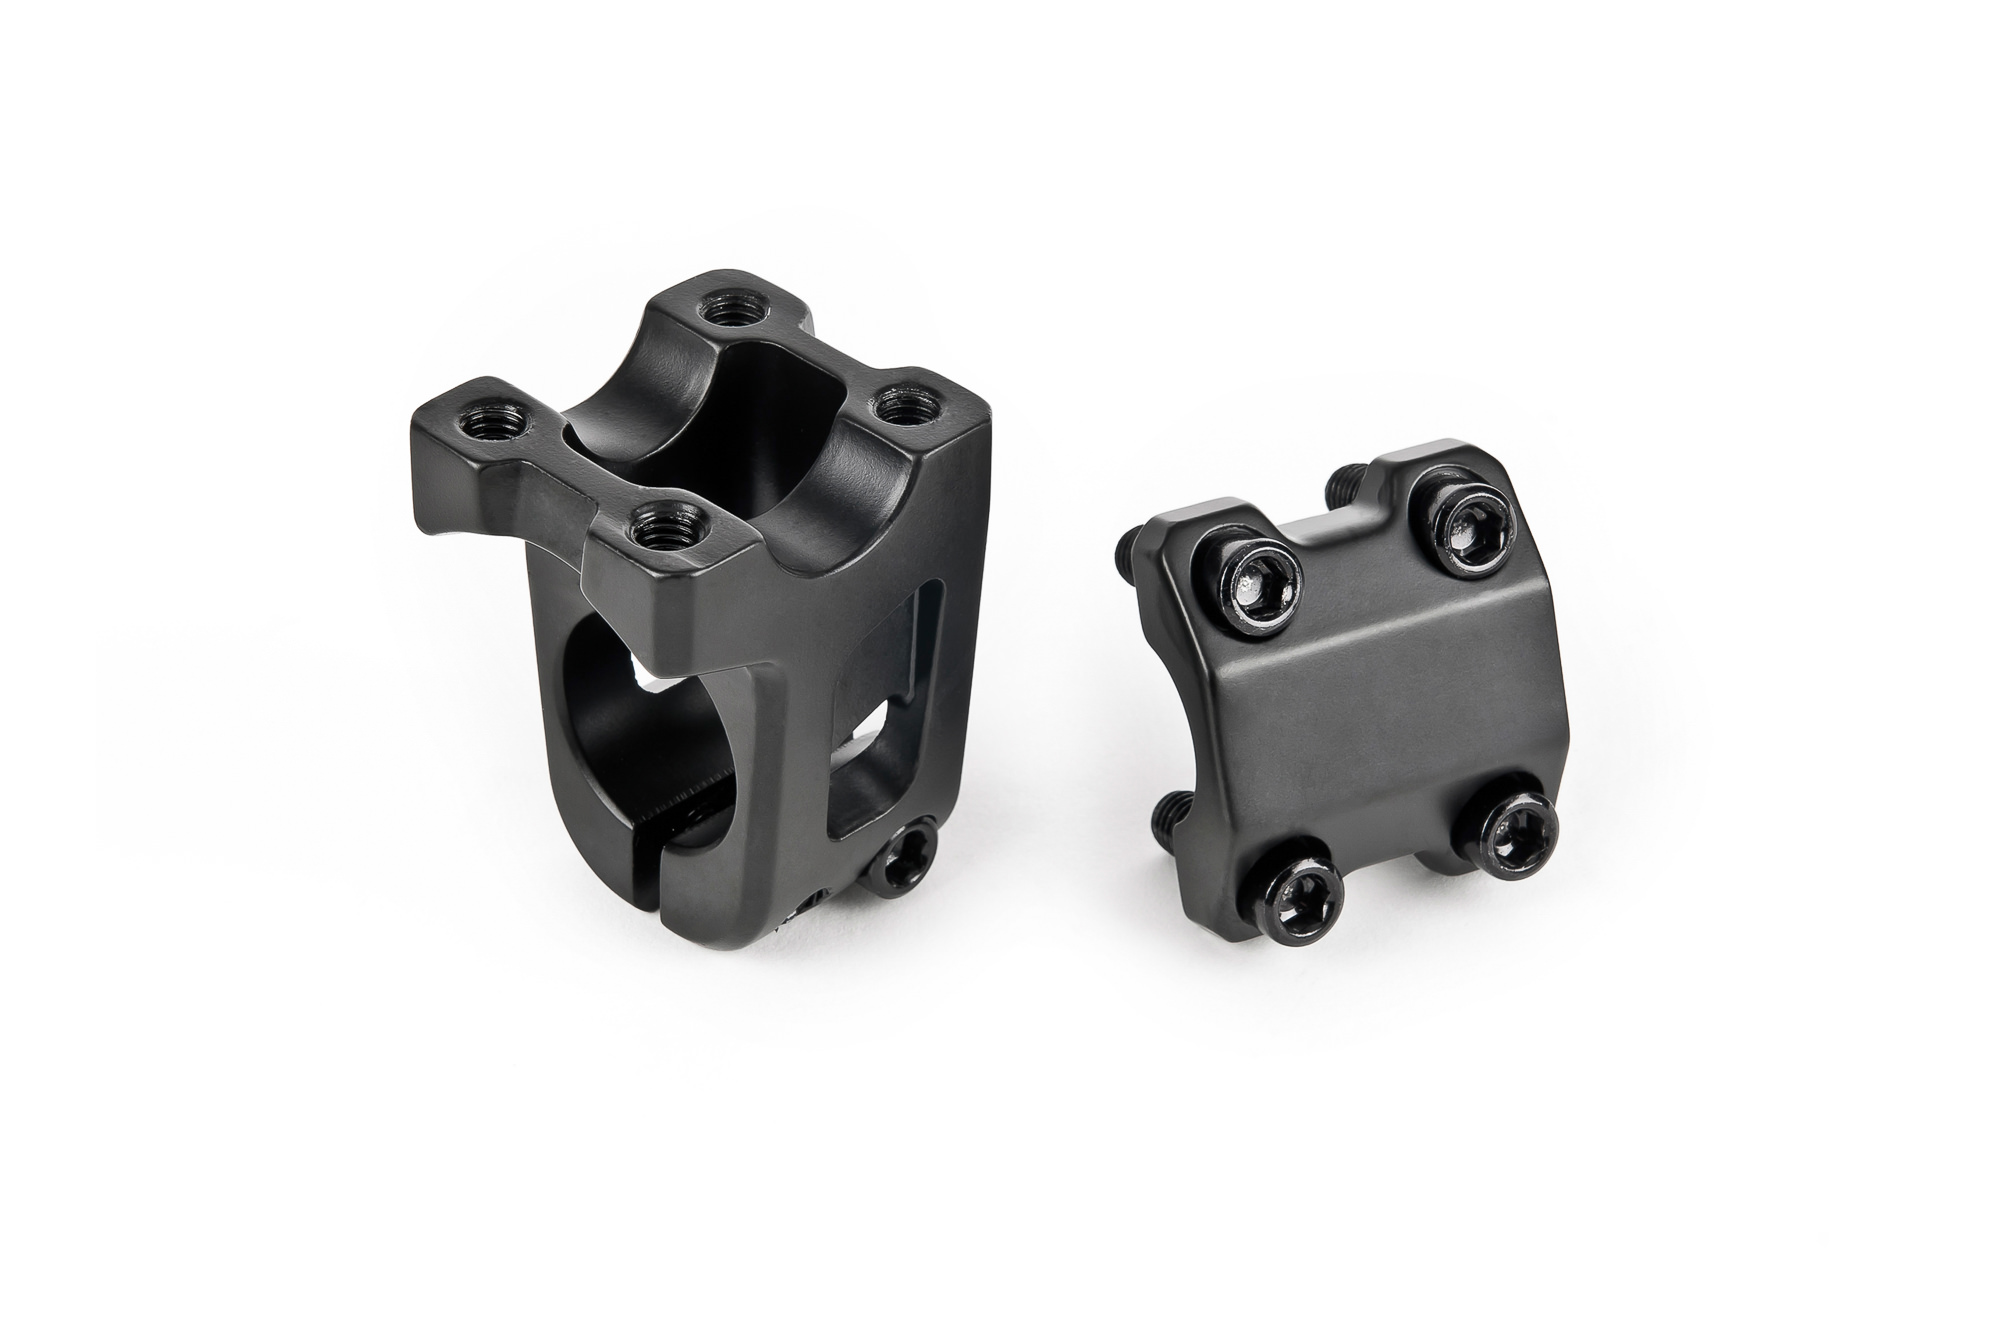 Salt_Junior_frontloader_stem_black_04